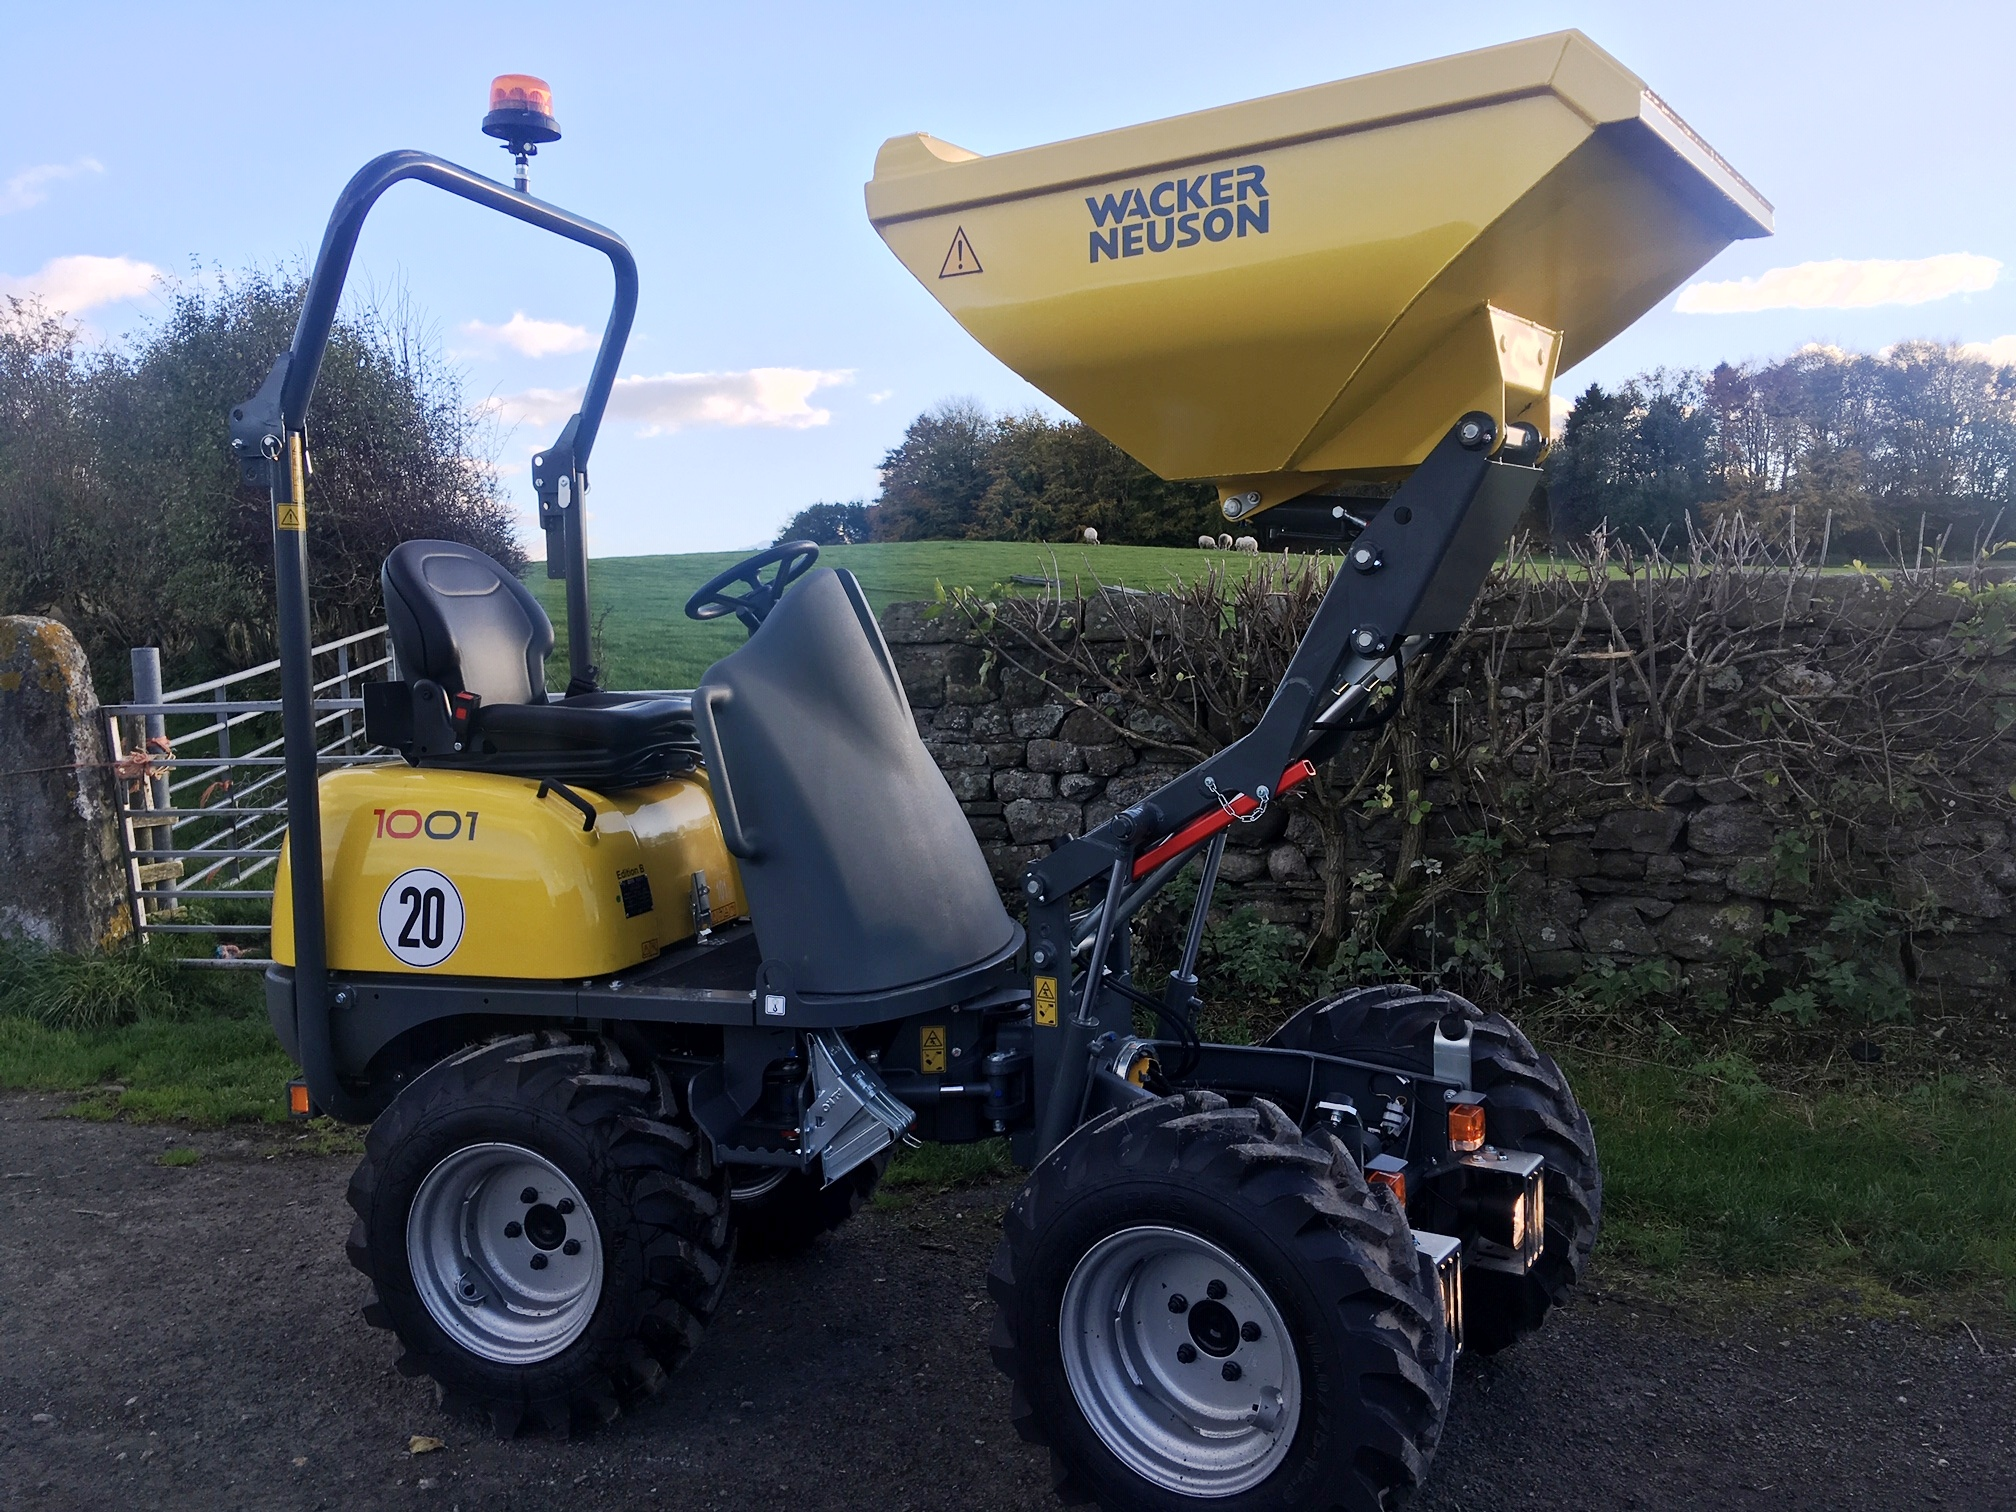 Wacker Neuson 1001 Dumper Added To Our Hire Fleet